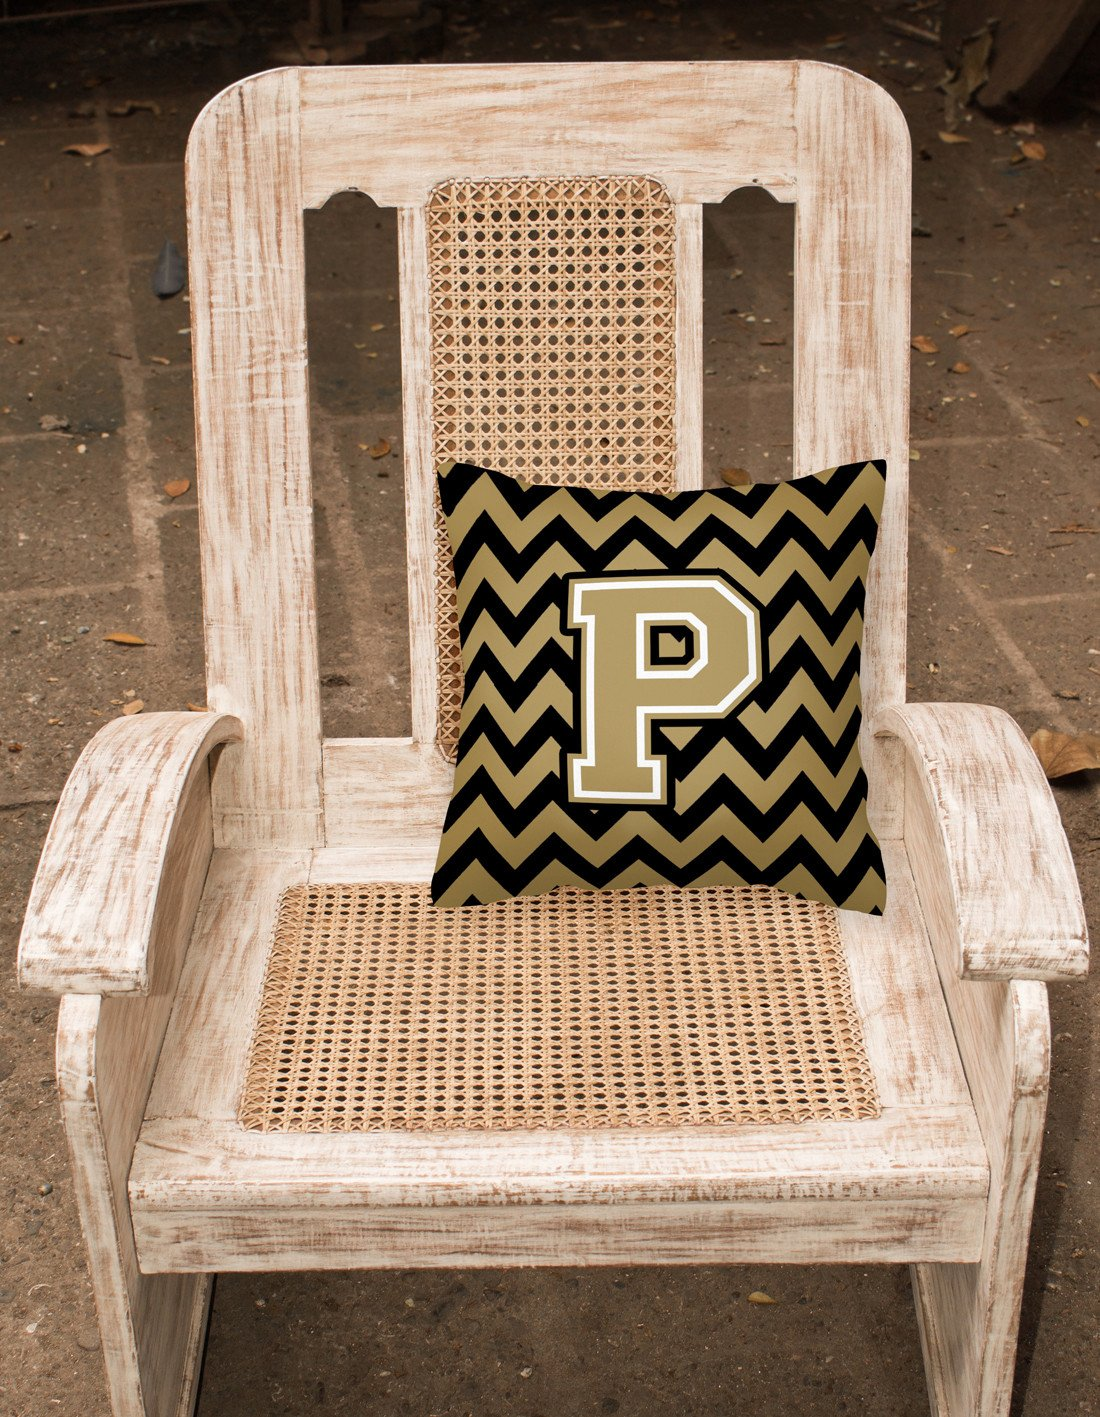 Letter P Chevron Black and Gold  Fabric Decorative Pillow CJ1050-PPW1414 by Caroline's Treasures